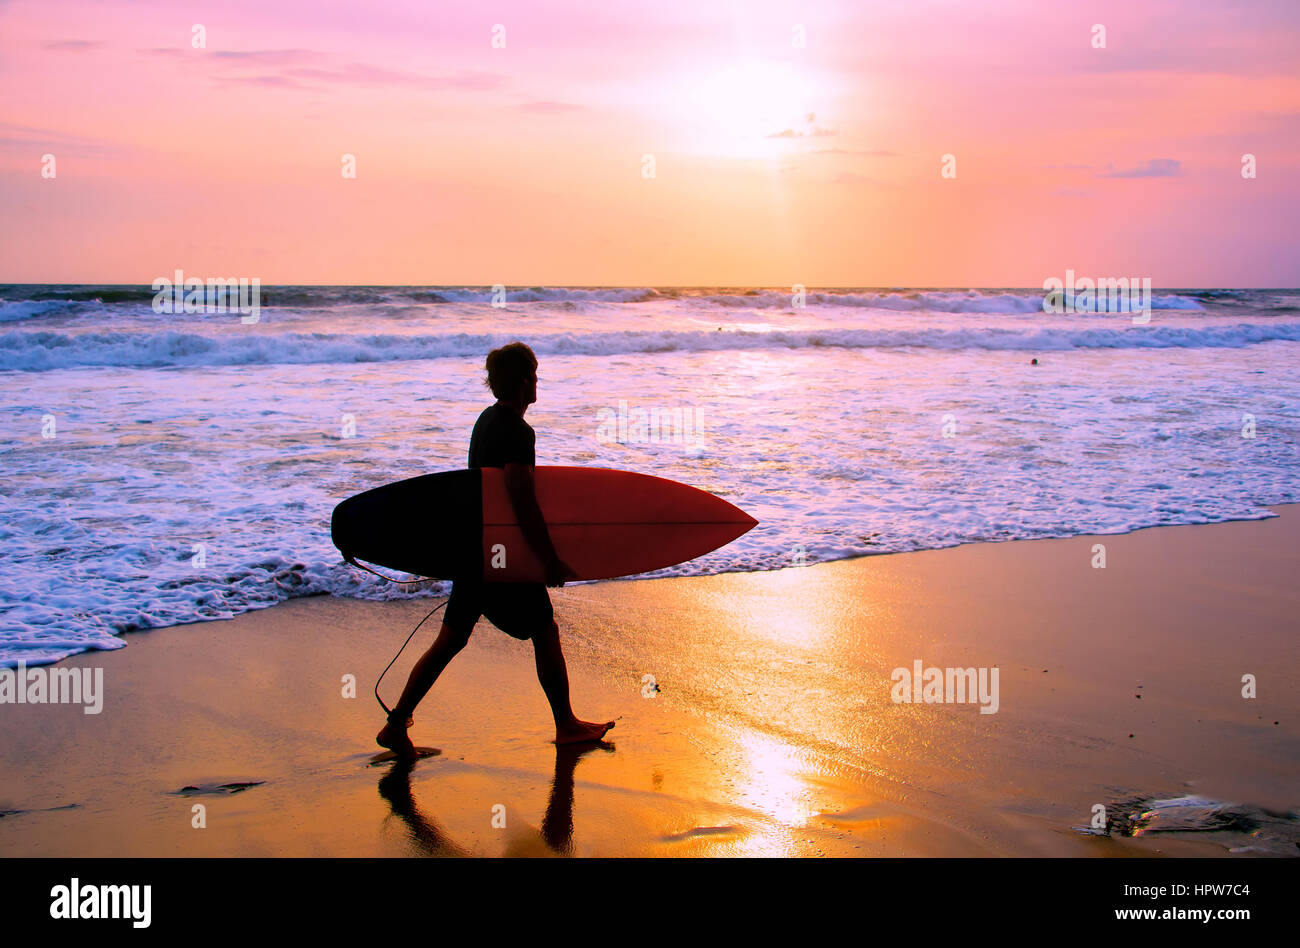 Surfer with surfboard walking on the sandy beach at sunset. Bali island, Indonesia Stock Foto